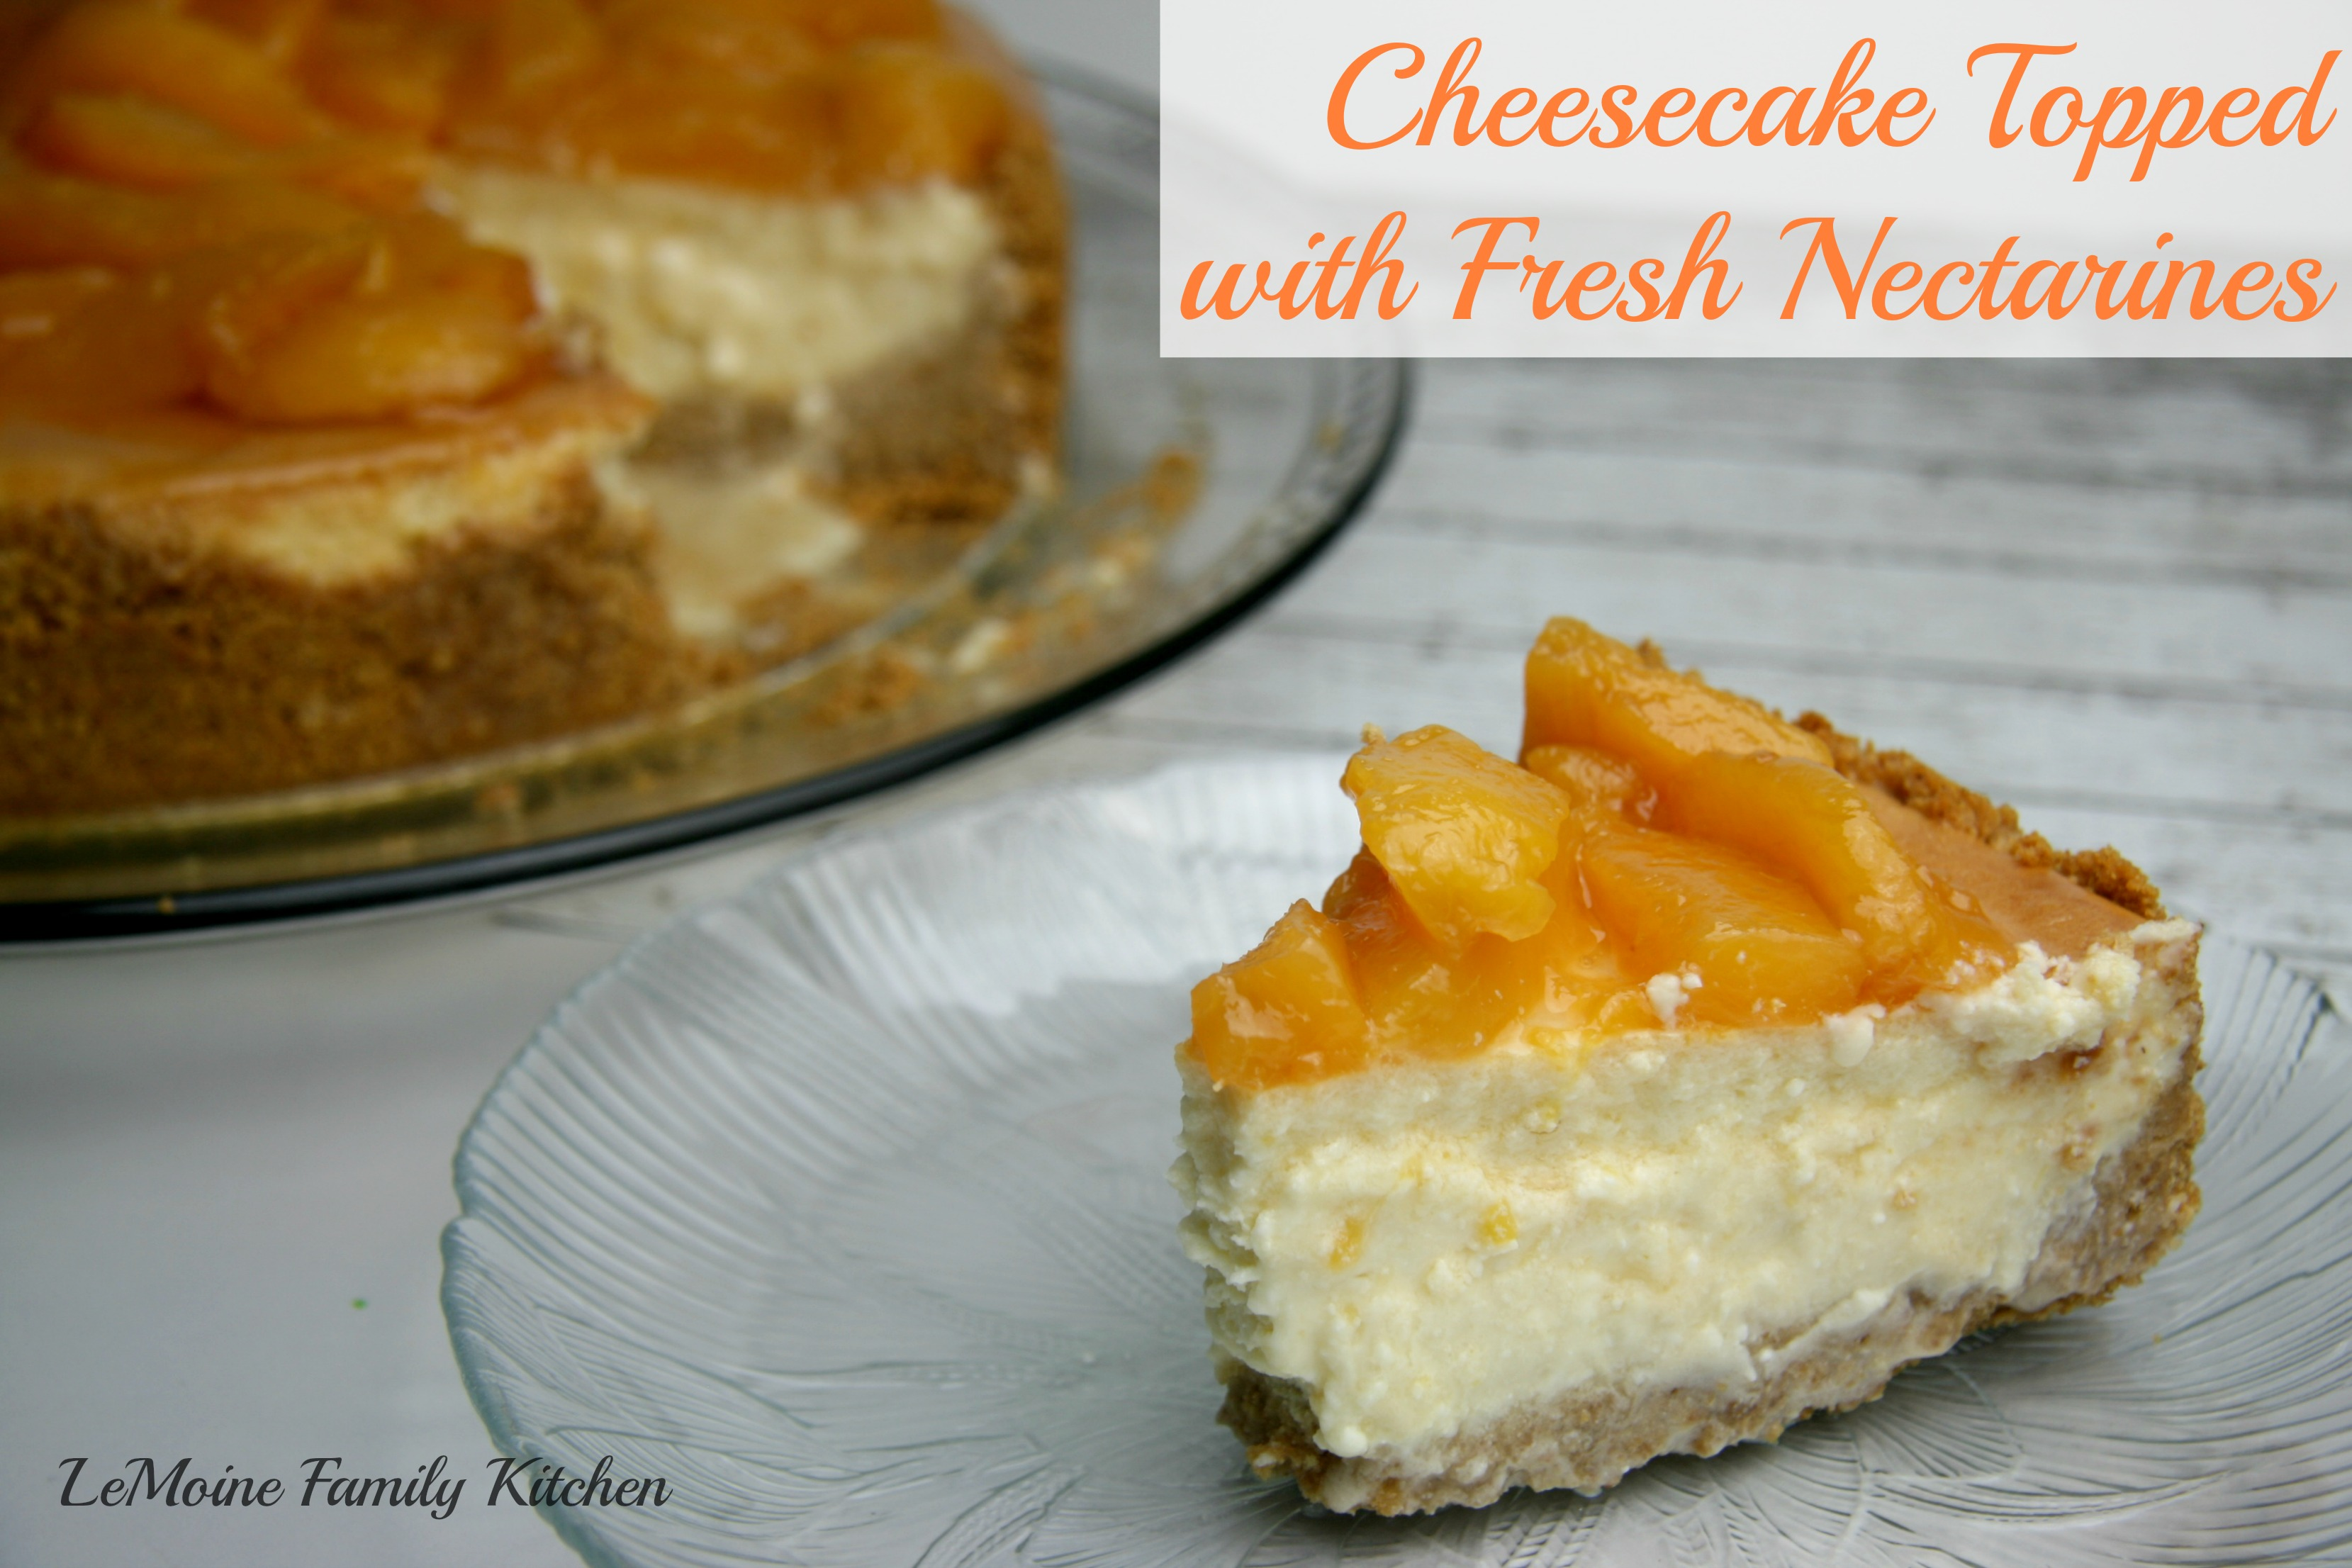 Cheesecake Topped with Fresh Nectarines